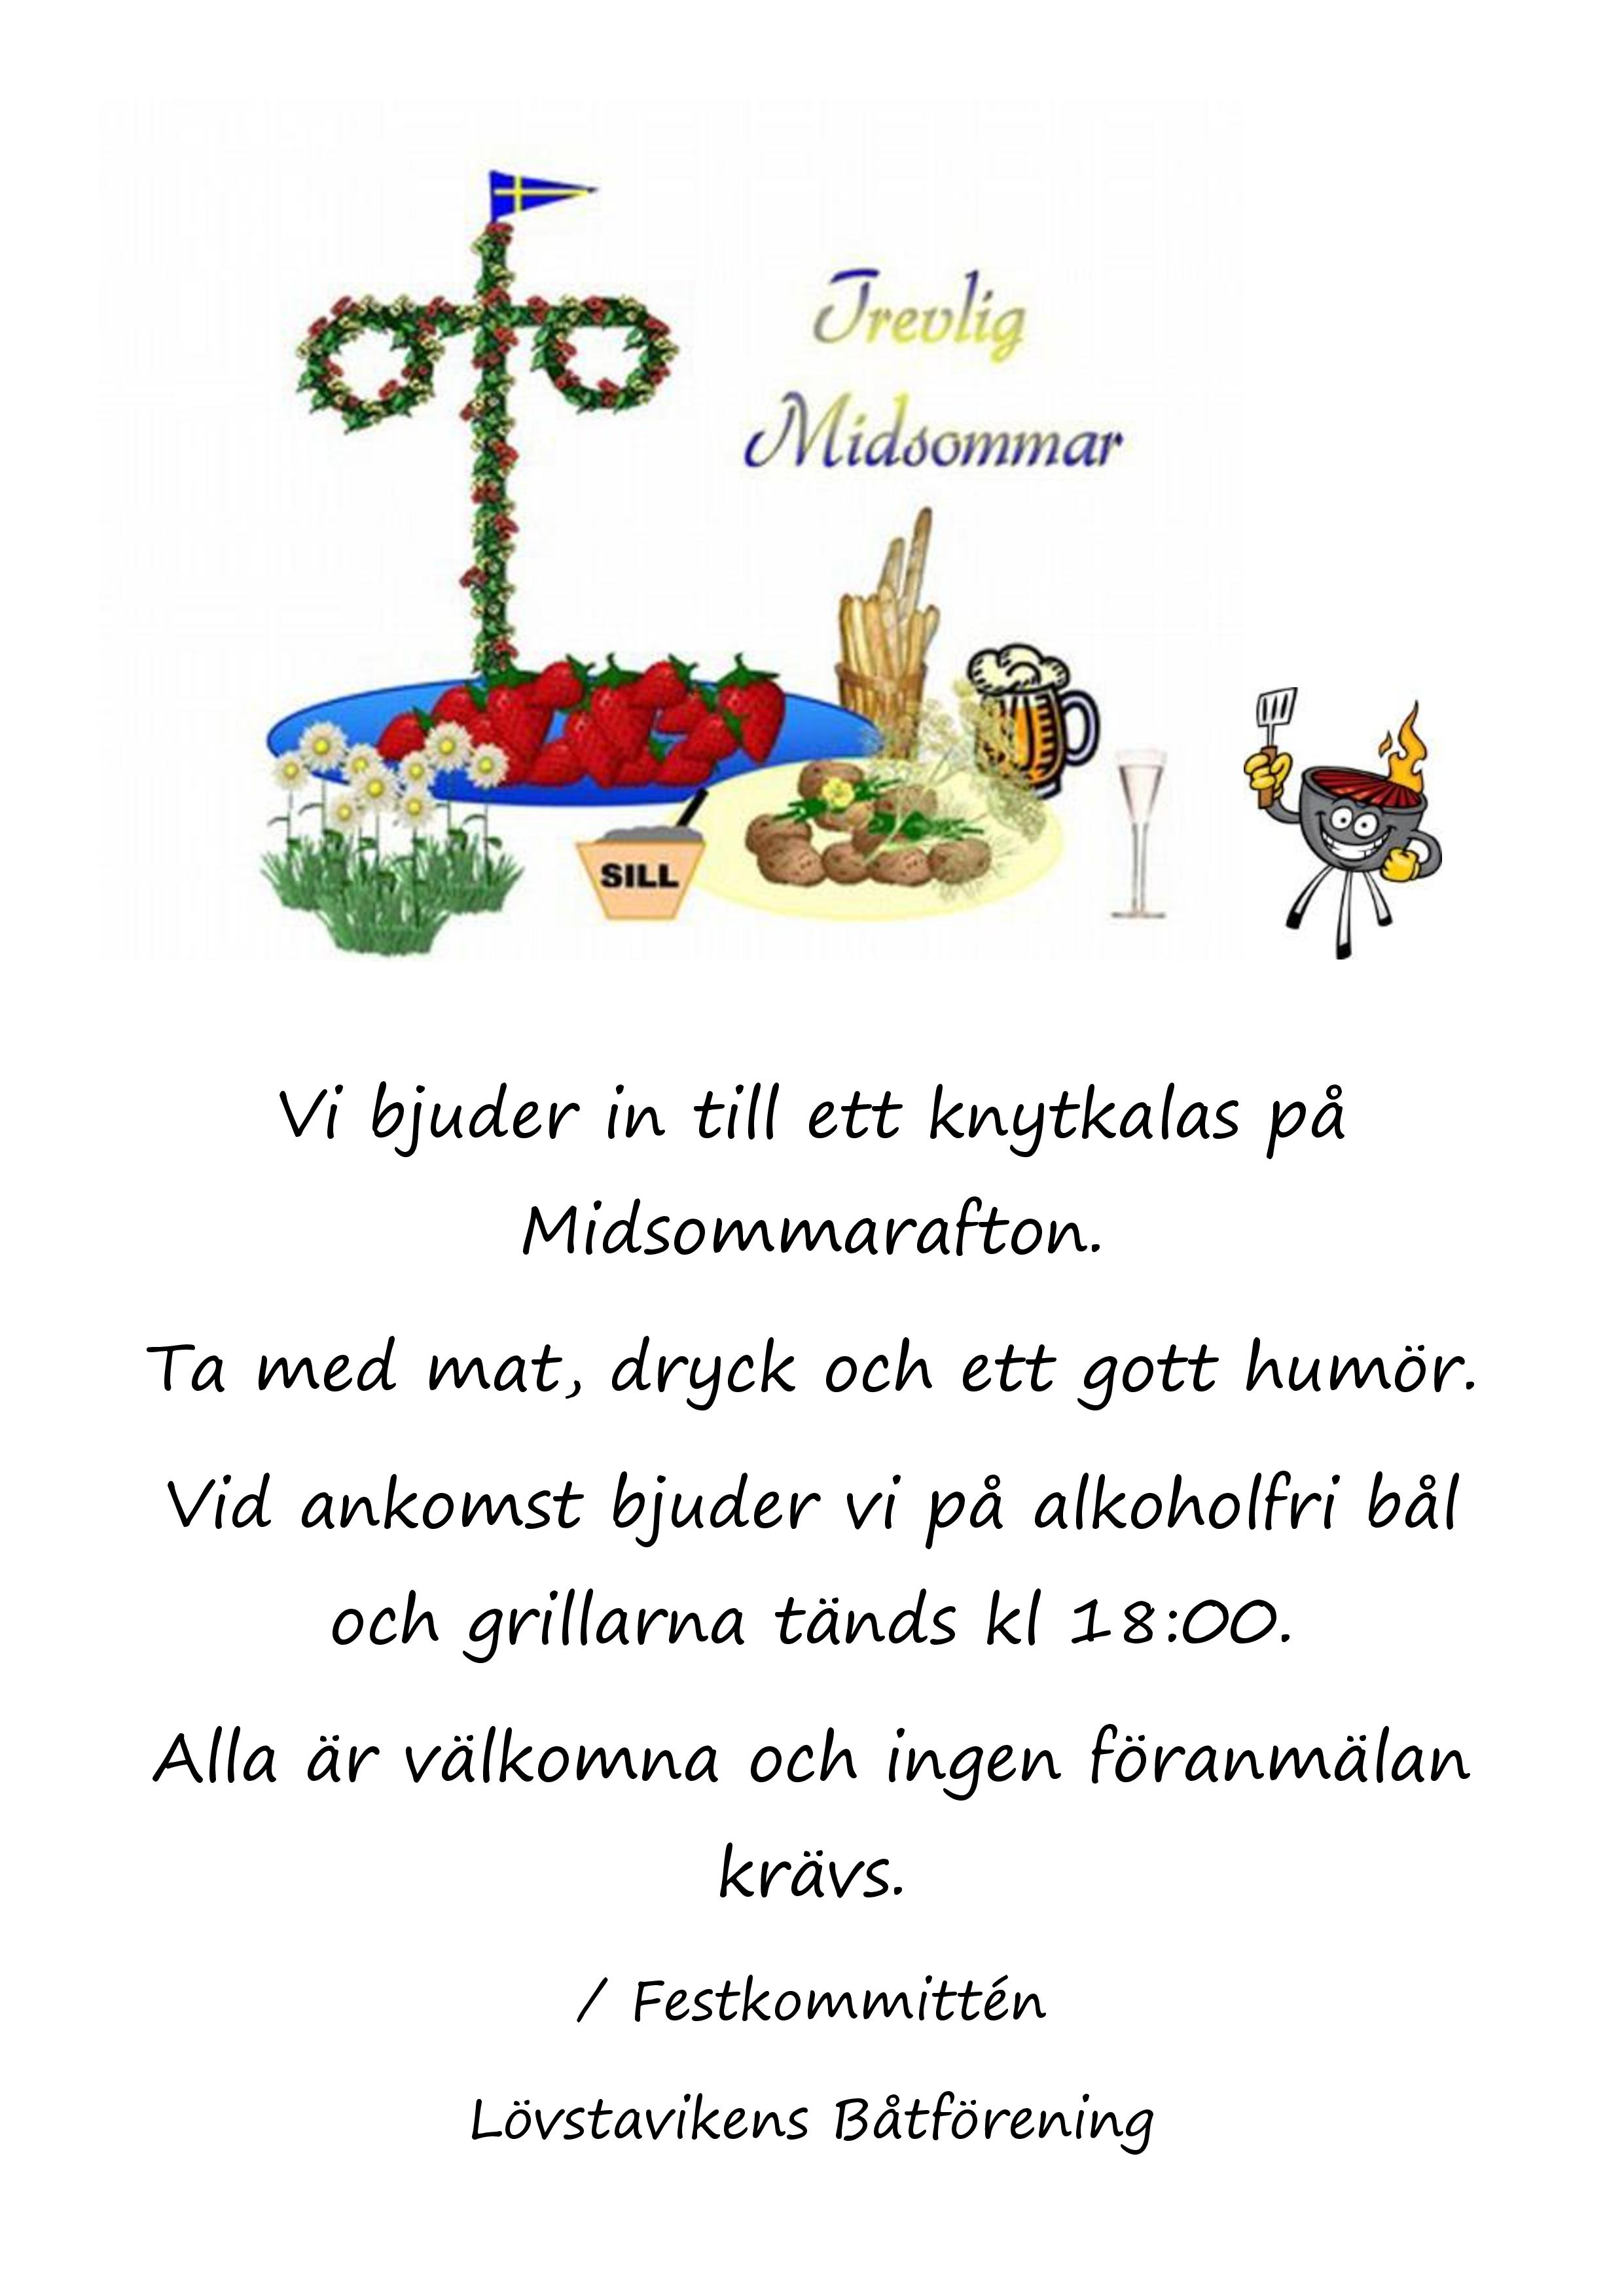 midsommar2018-page-001